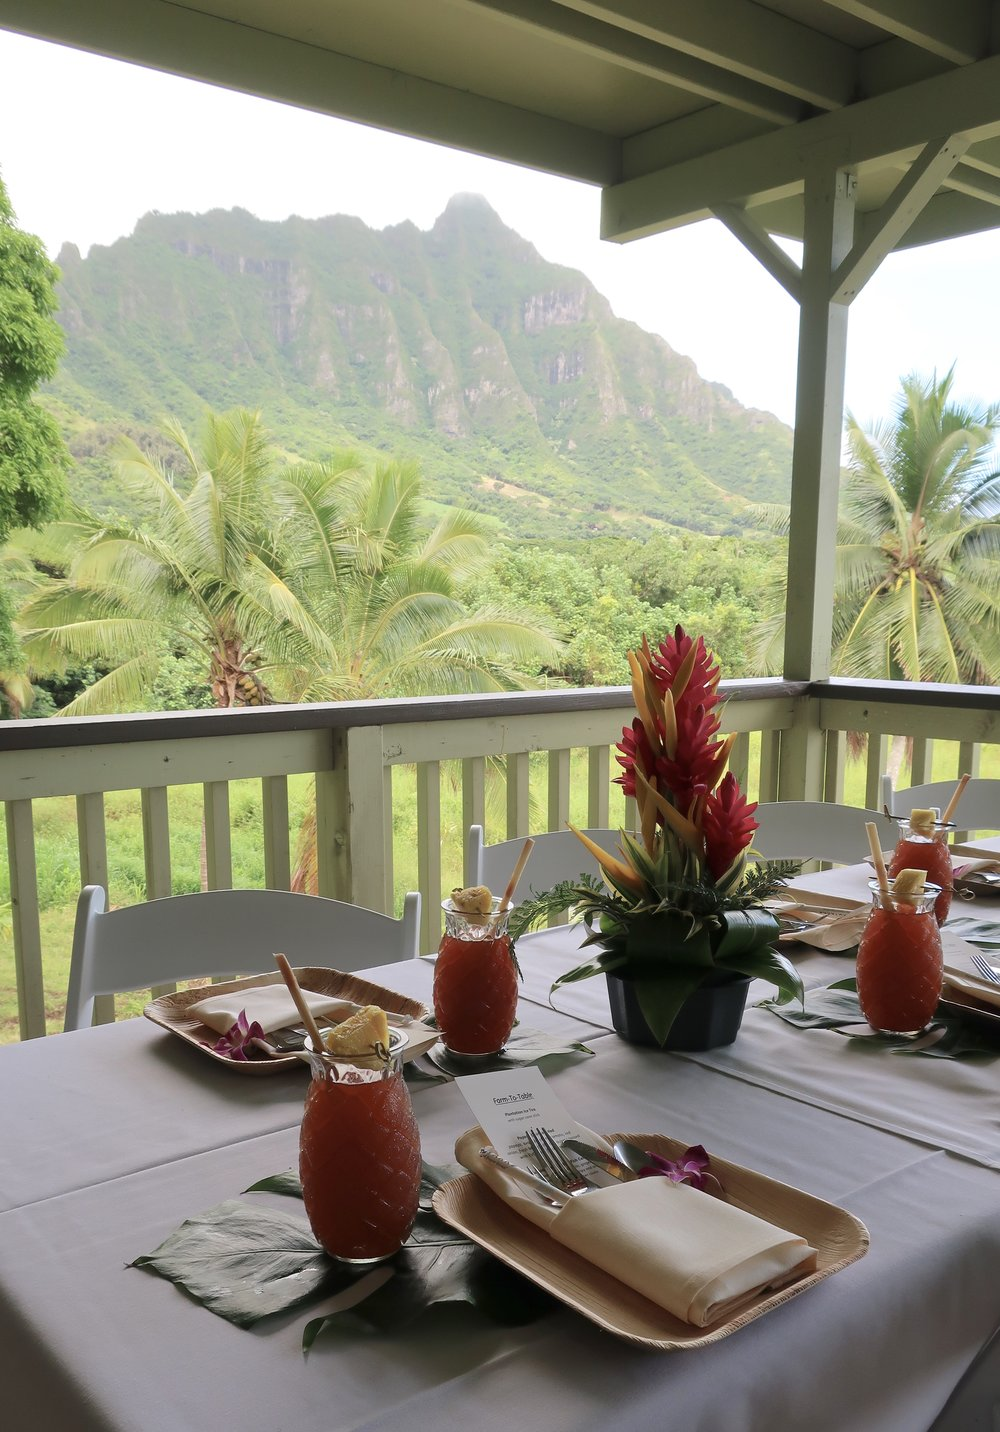 lunch at Hale'Aina Lanai overlooking the shrimp farms and ridges of kualoa Ranch's jurassic valley.